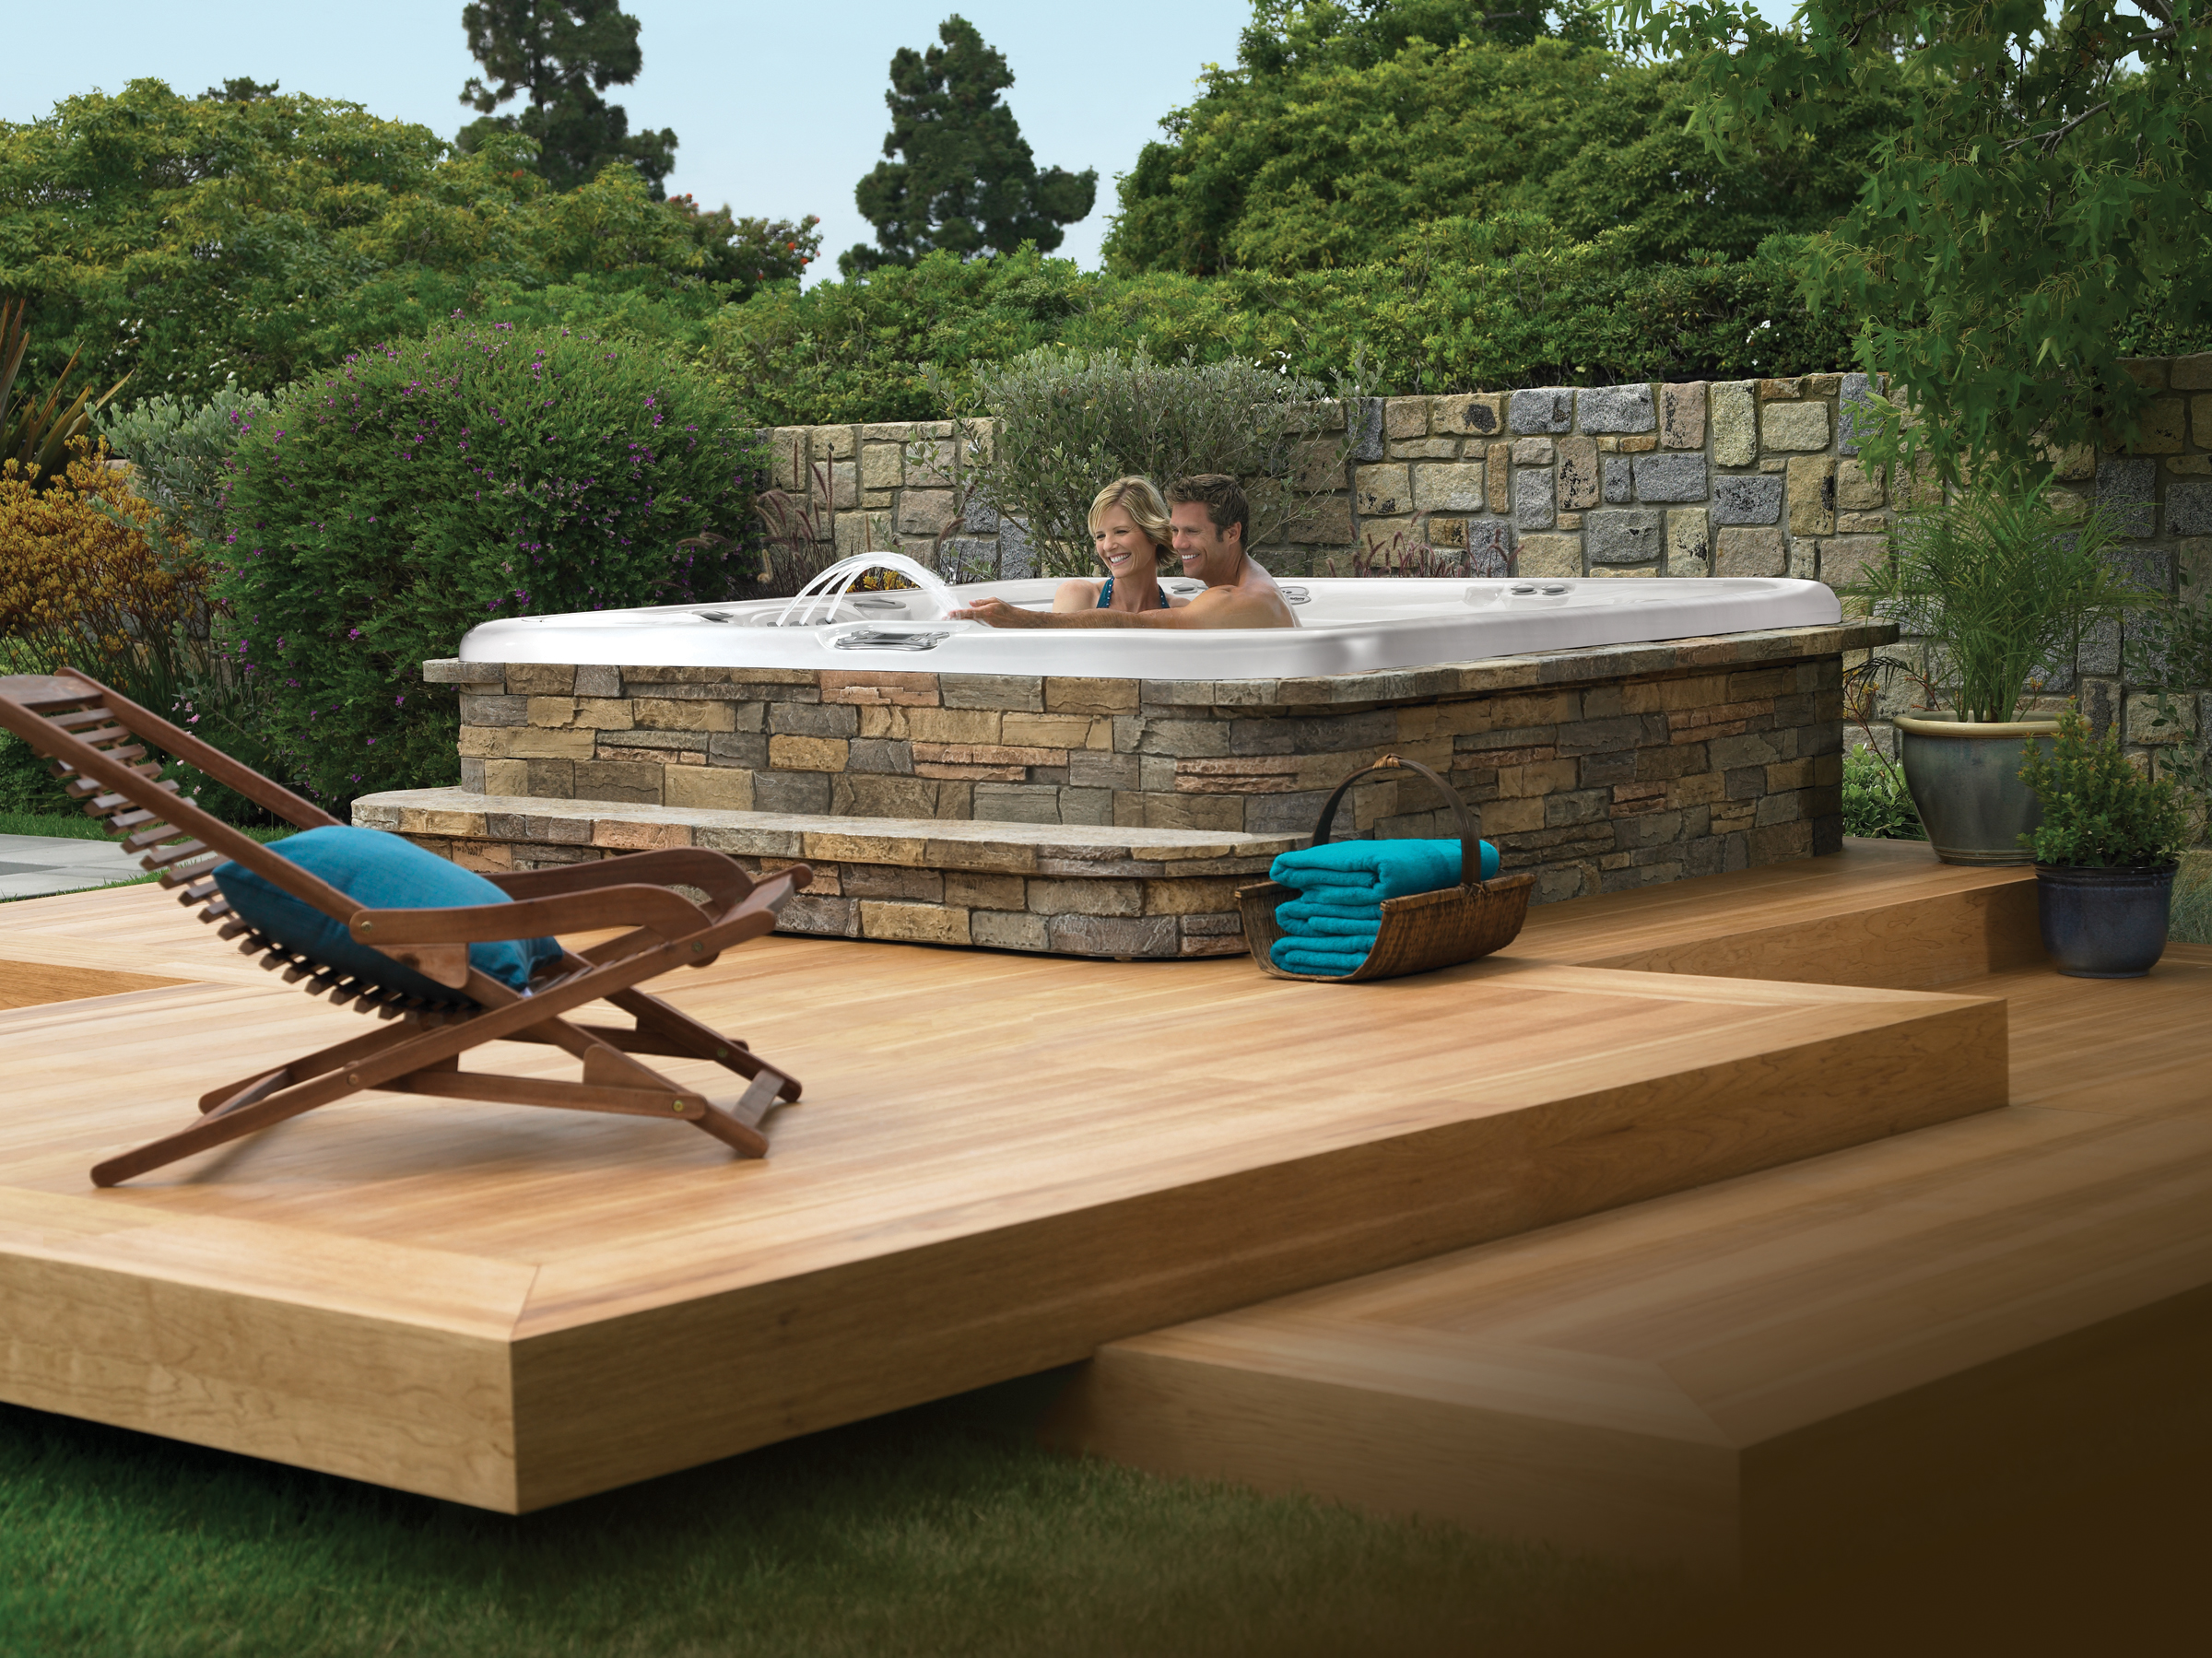 Do Hot Tubs Improve Home Values?